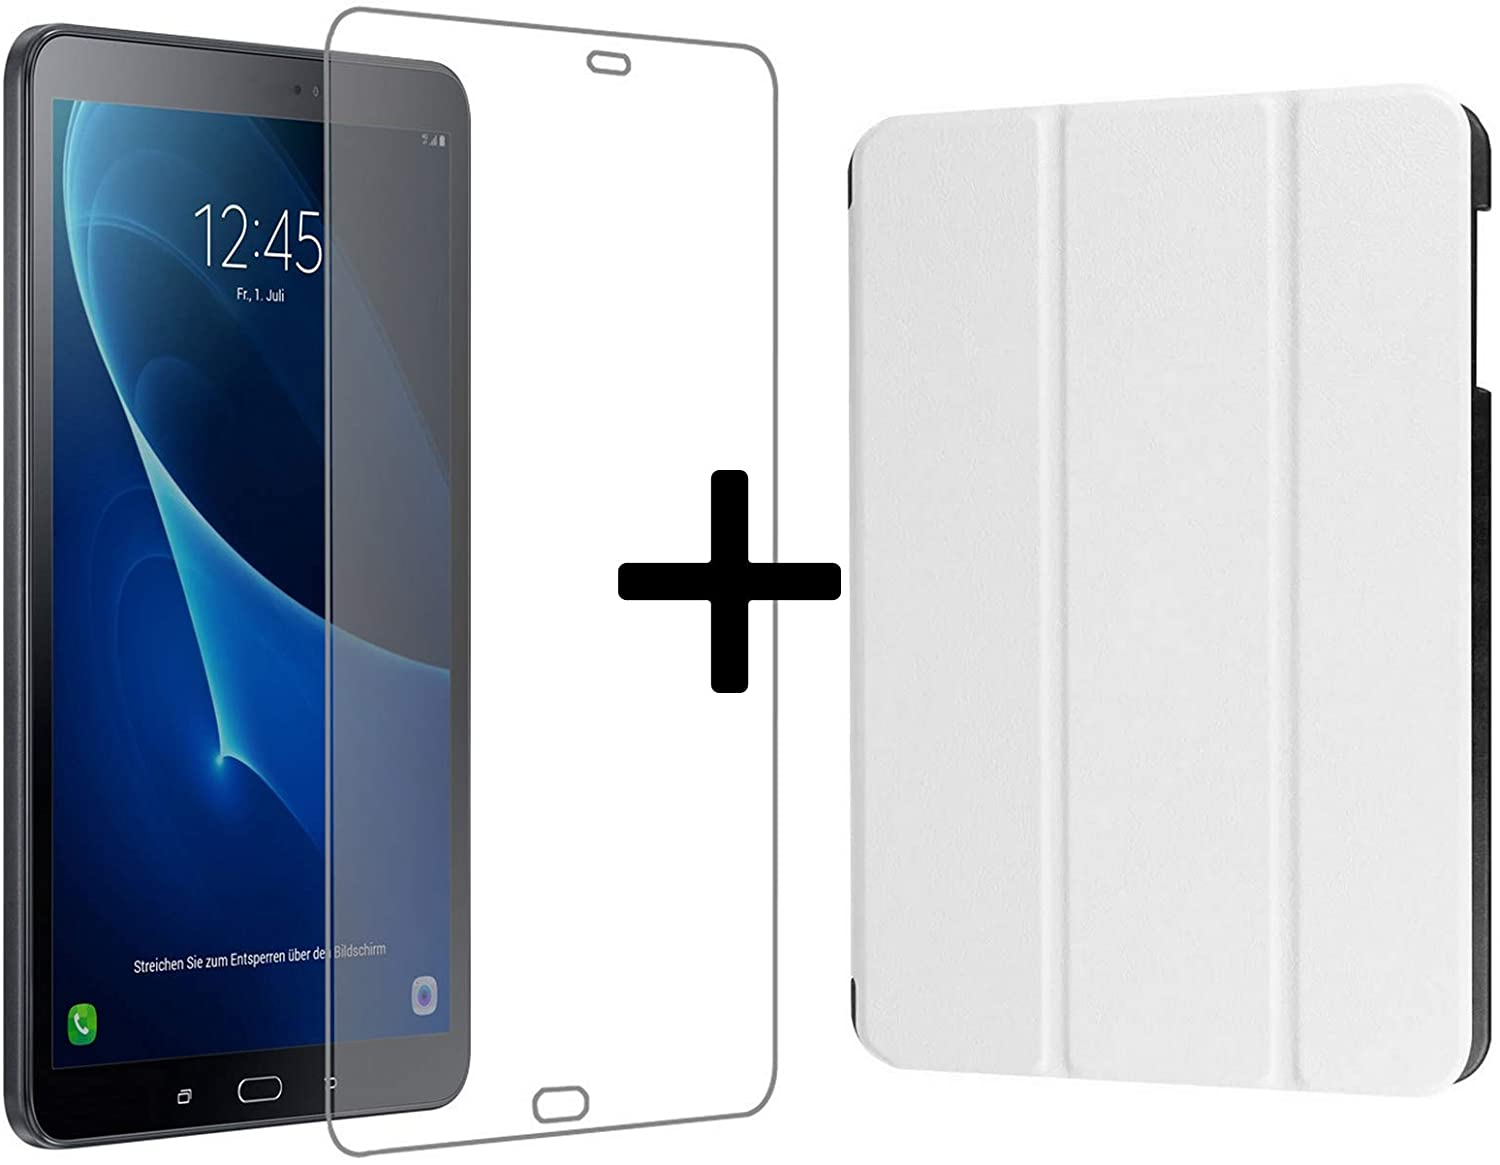 Lobwerk 3in1 Set for Samsung Galaxy Tab A 10.1 Inch SM-T580 T585 Tablet with Smart Case + Screen Protector + Stylus Pen with Auto Sleep/Wake White